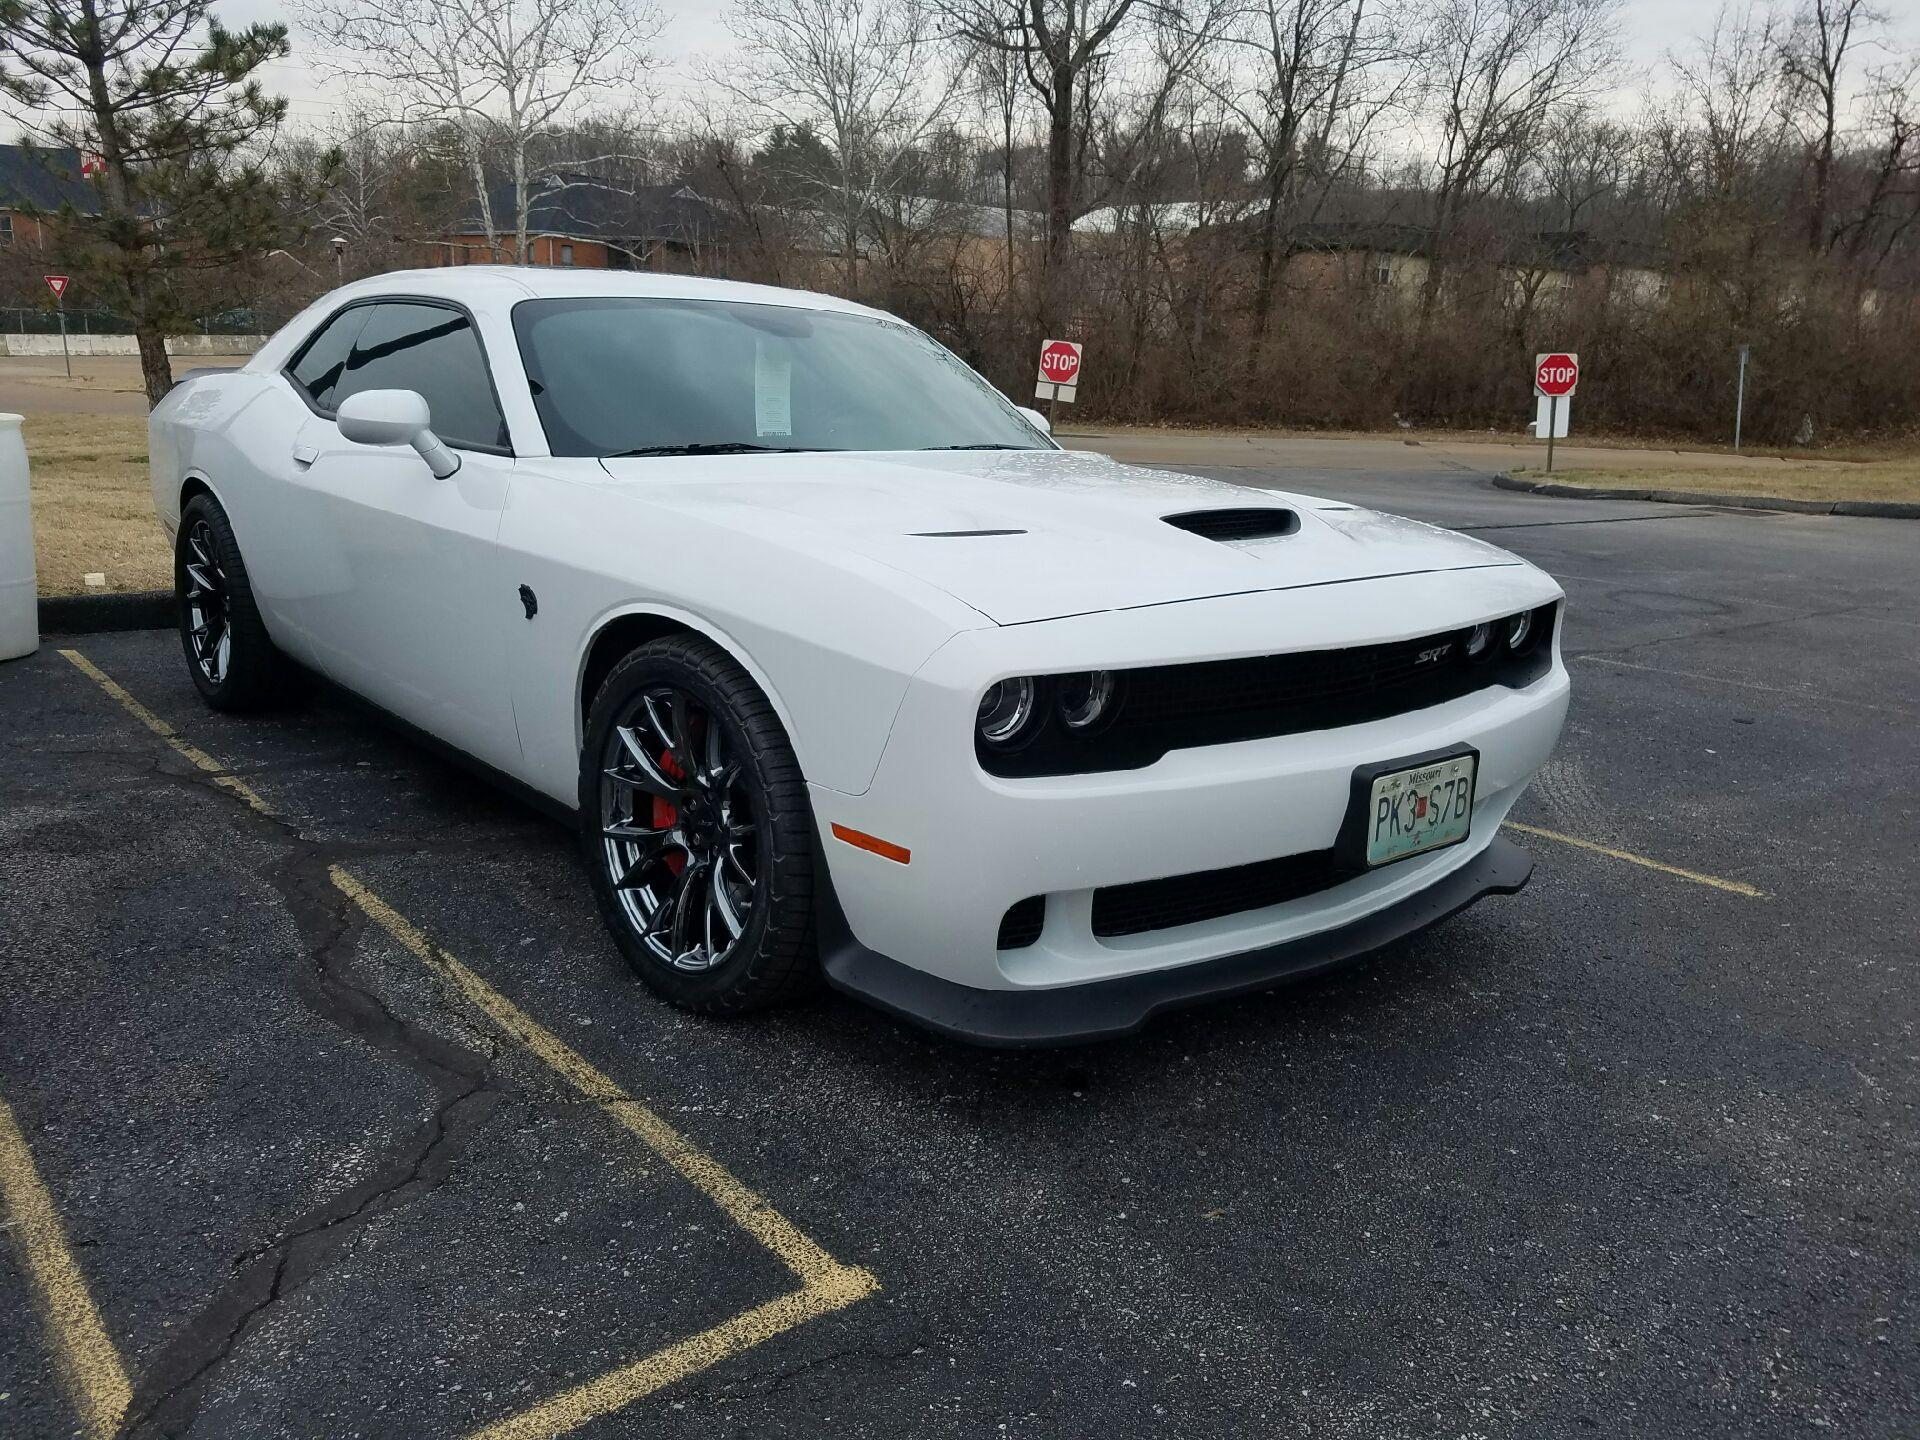 dodge-hellcat-sporting-the-white-and-black-ice-look_32930008411_o.jpg